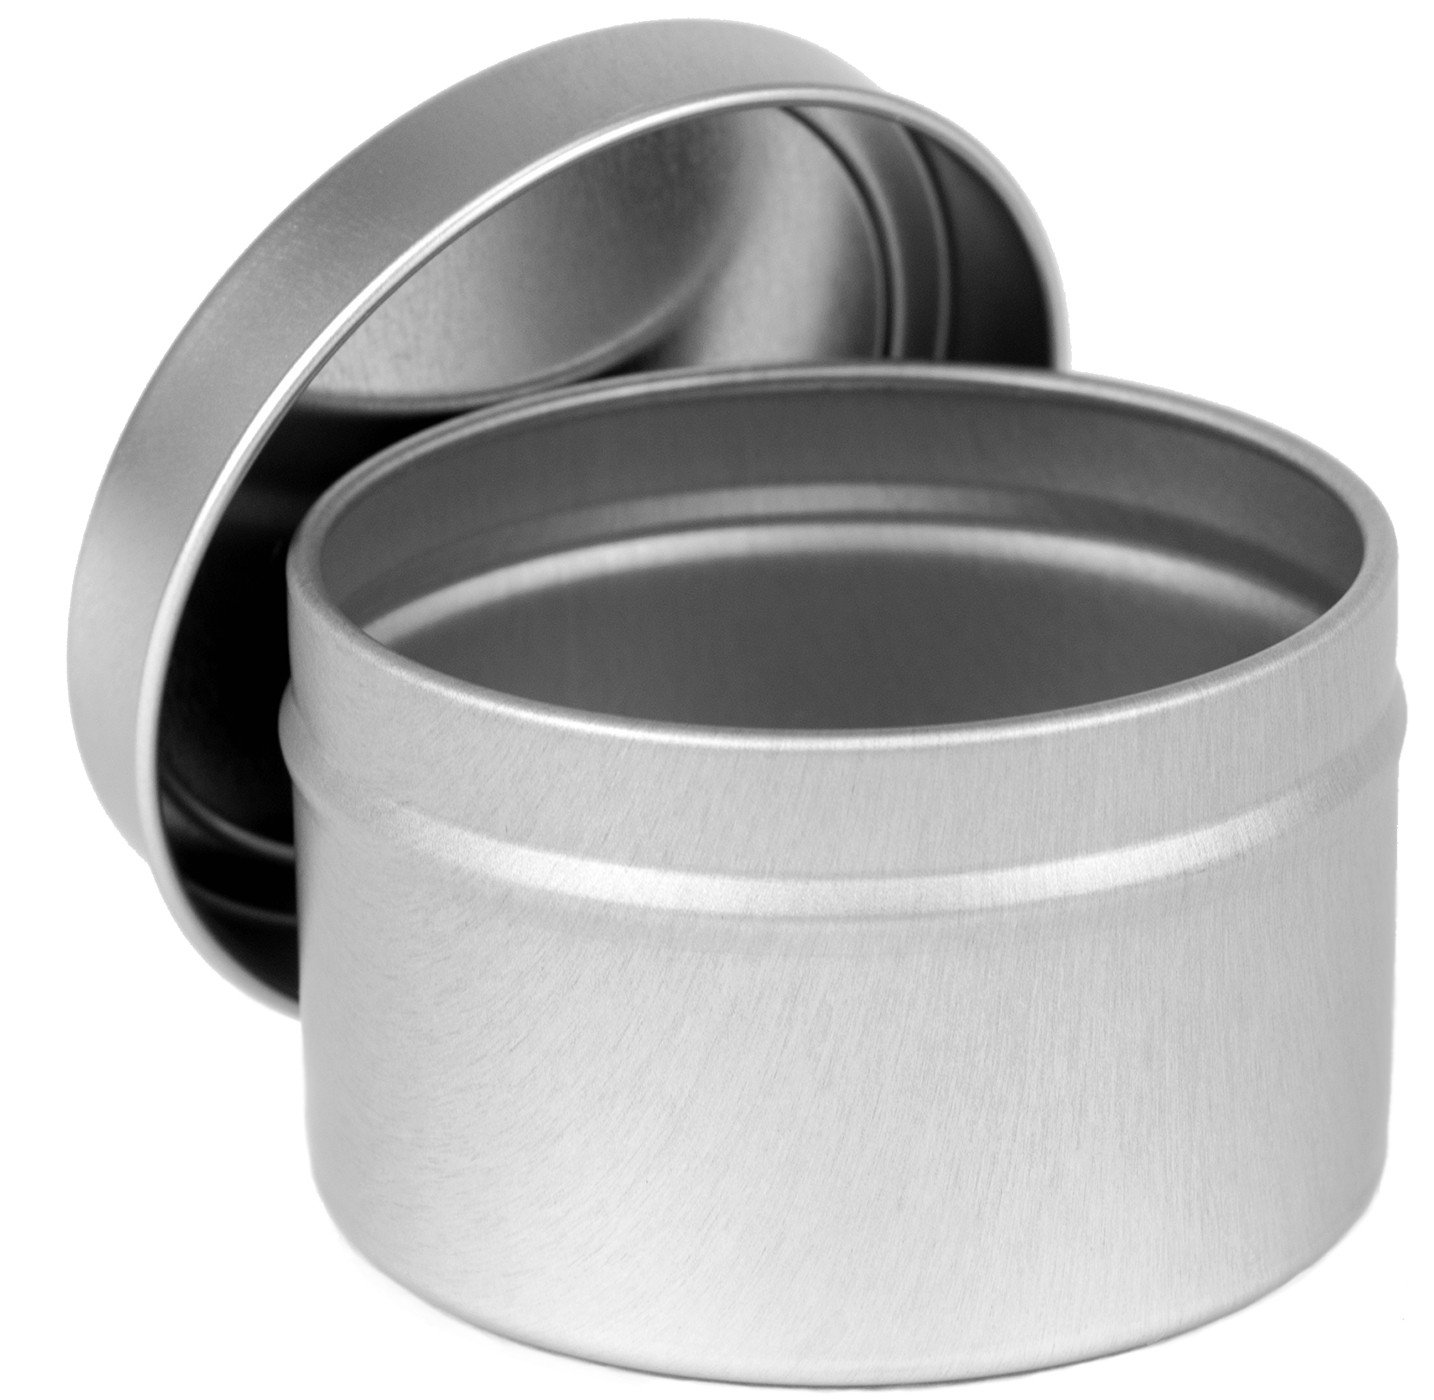 CandleScience 12 Piece Medium Candle Tin, 6 oz